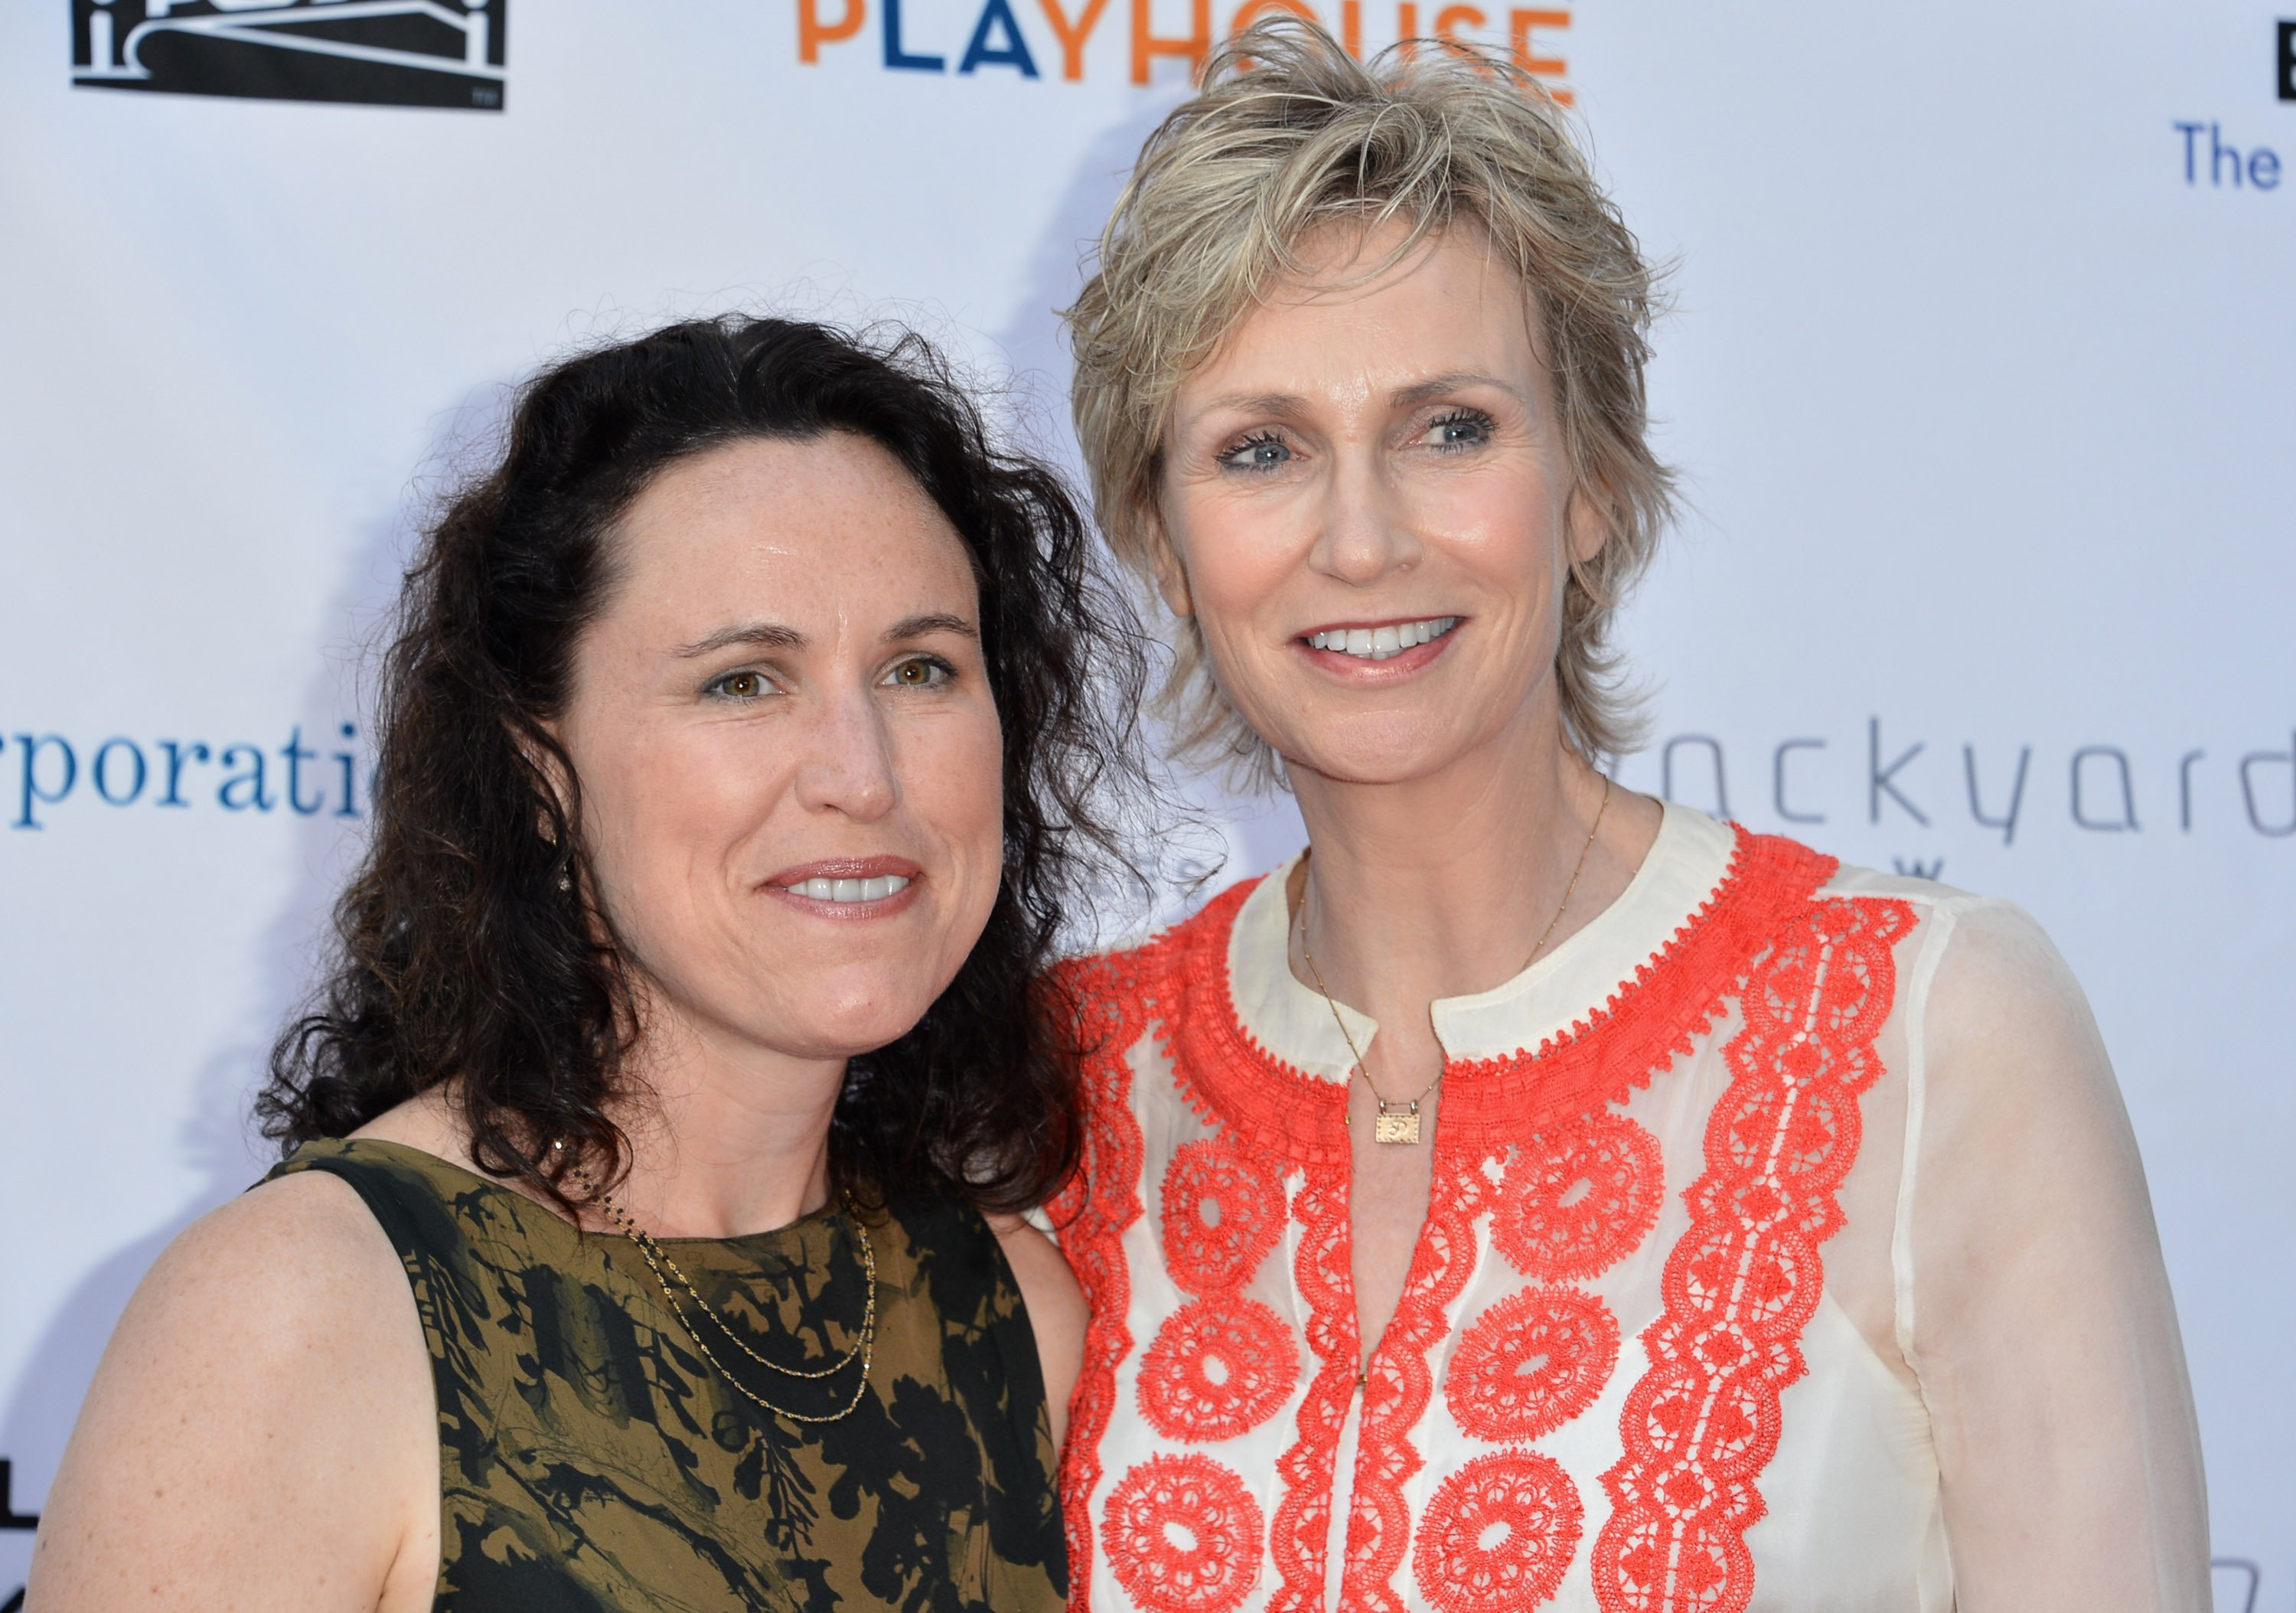 """Lara Embry and Jane Lynch attend the Geffen Playhoues """"Backstage at the Geffen"""" gala in Los Angeles, California on June 4, 2012   Photo: Getty Images"""